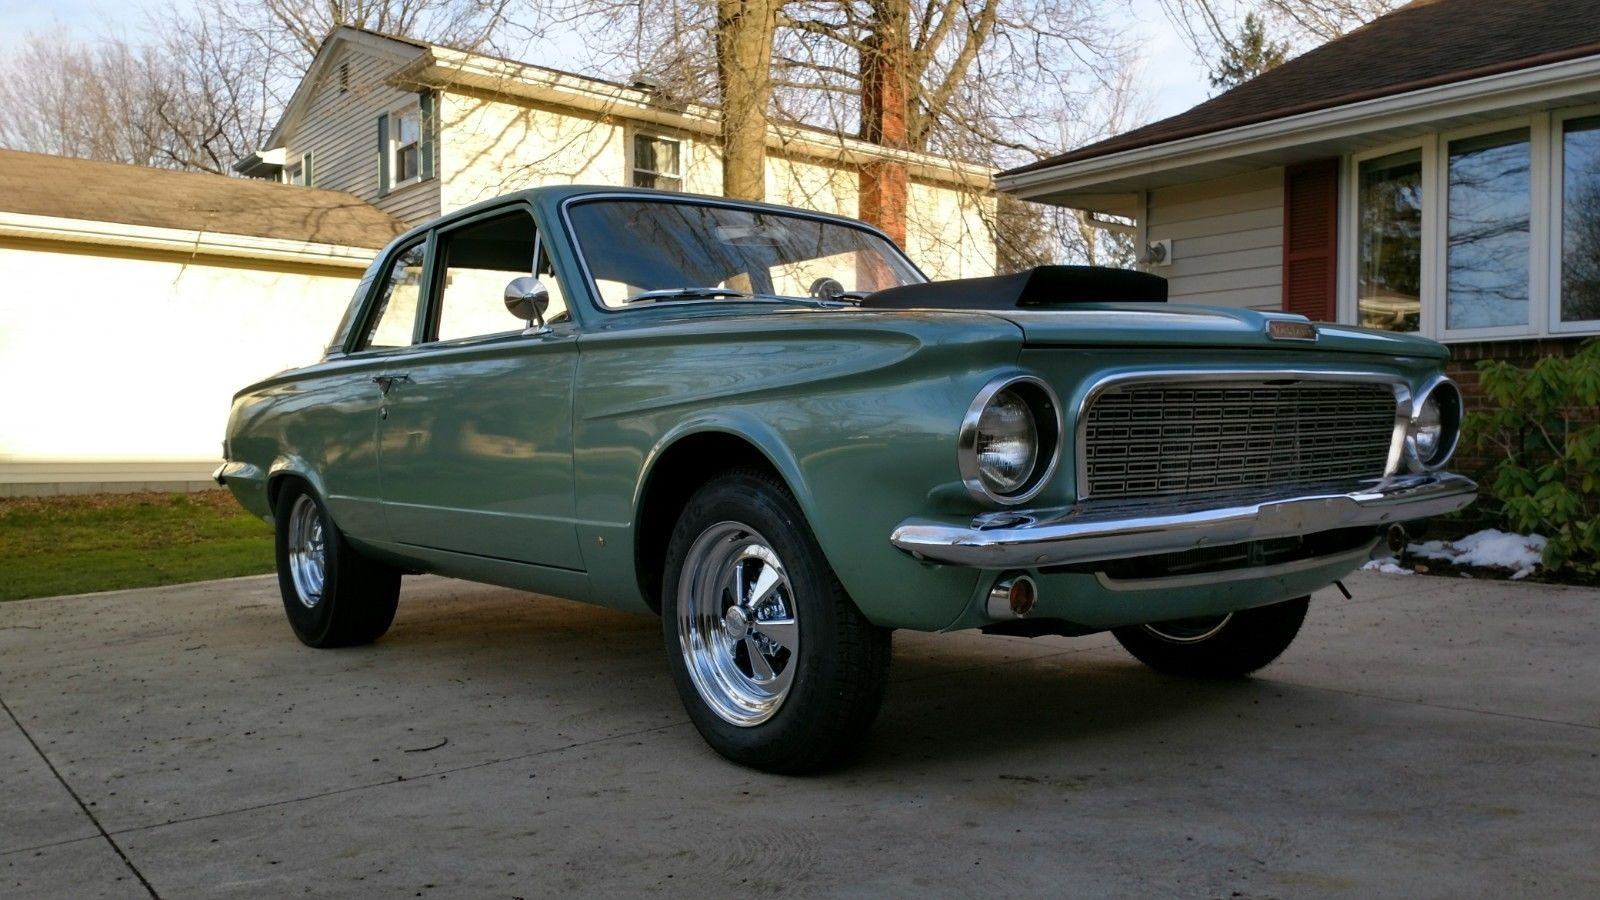 Drag Racing Tractor >> BangShift.com Neat As A Pin: A 1963 Plymouth Valiant Clean ...